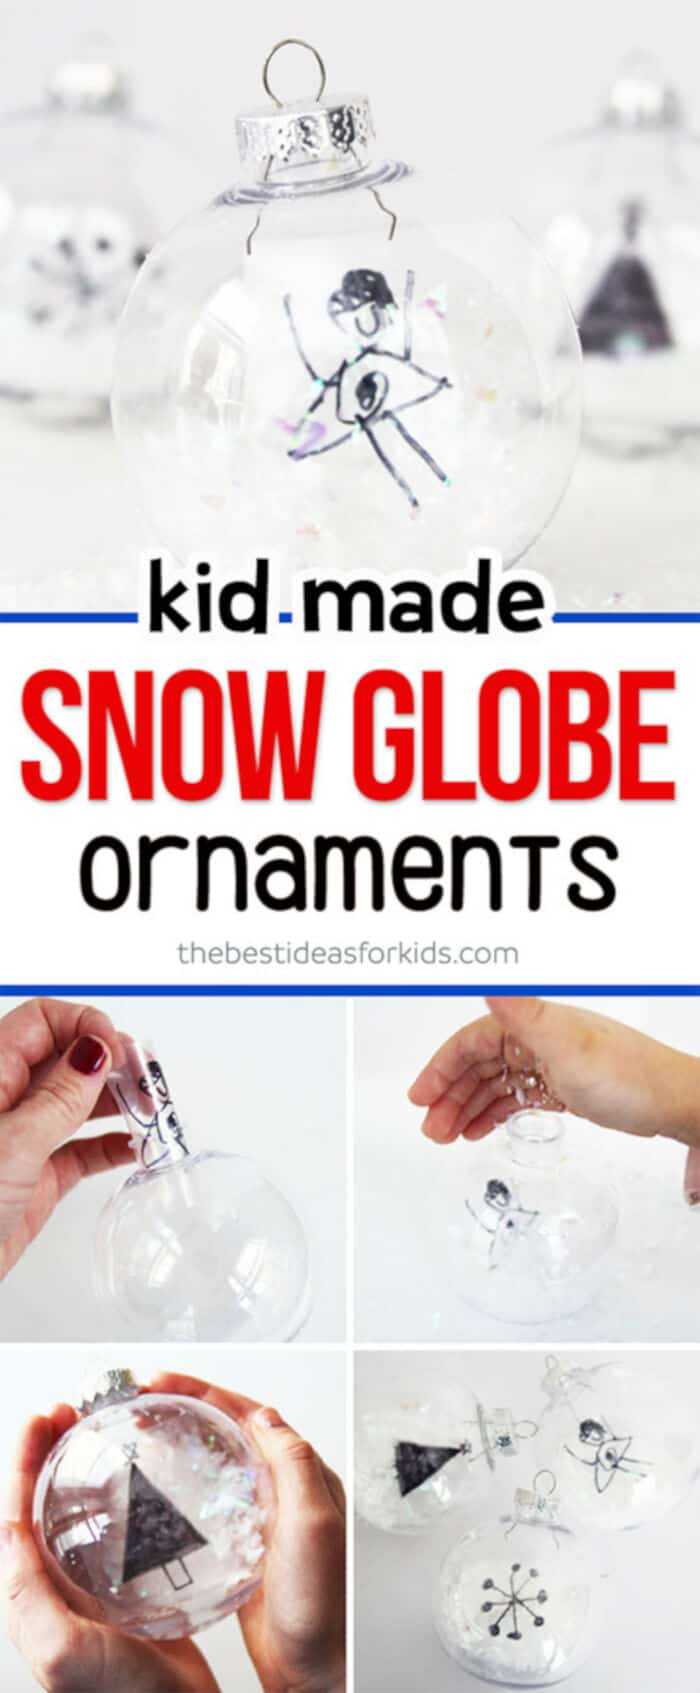 DIY Snow Globe Ornaments by The Best Ideas for Kids